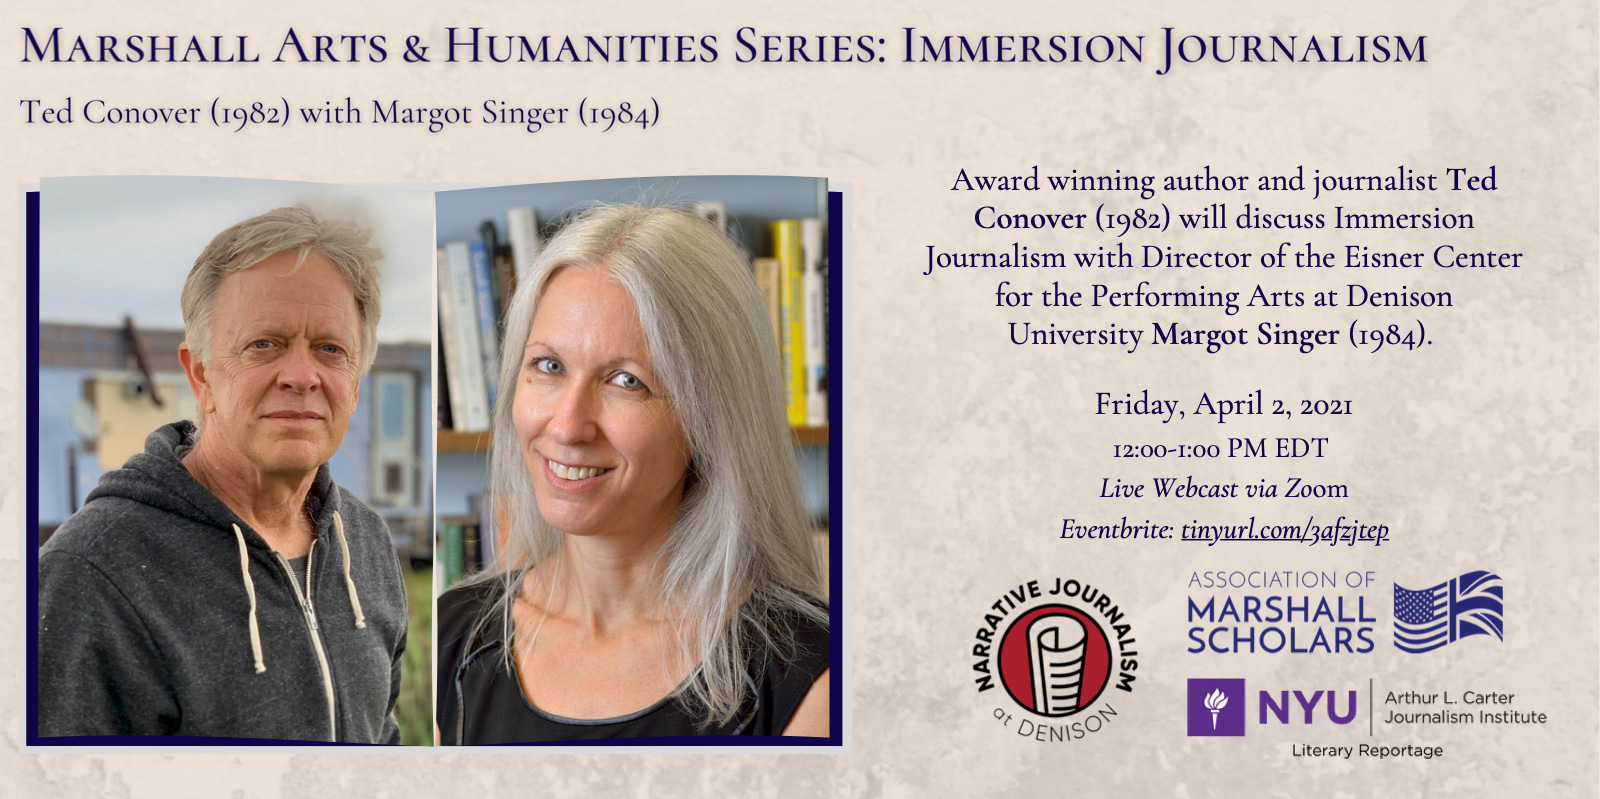 Event Poster - 2021 Spring - Marshall Arts & Humanities Series: Immersion Journalism - See event page for details